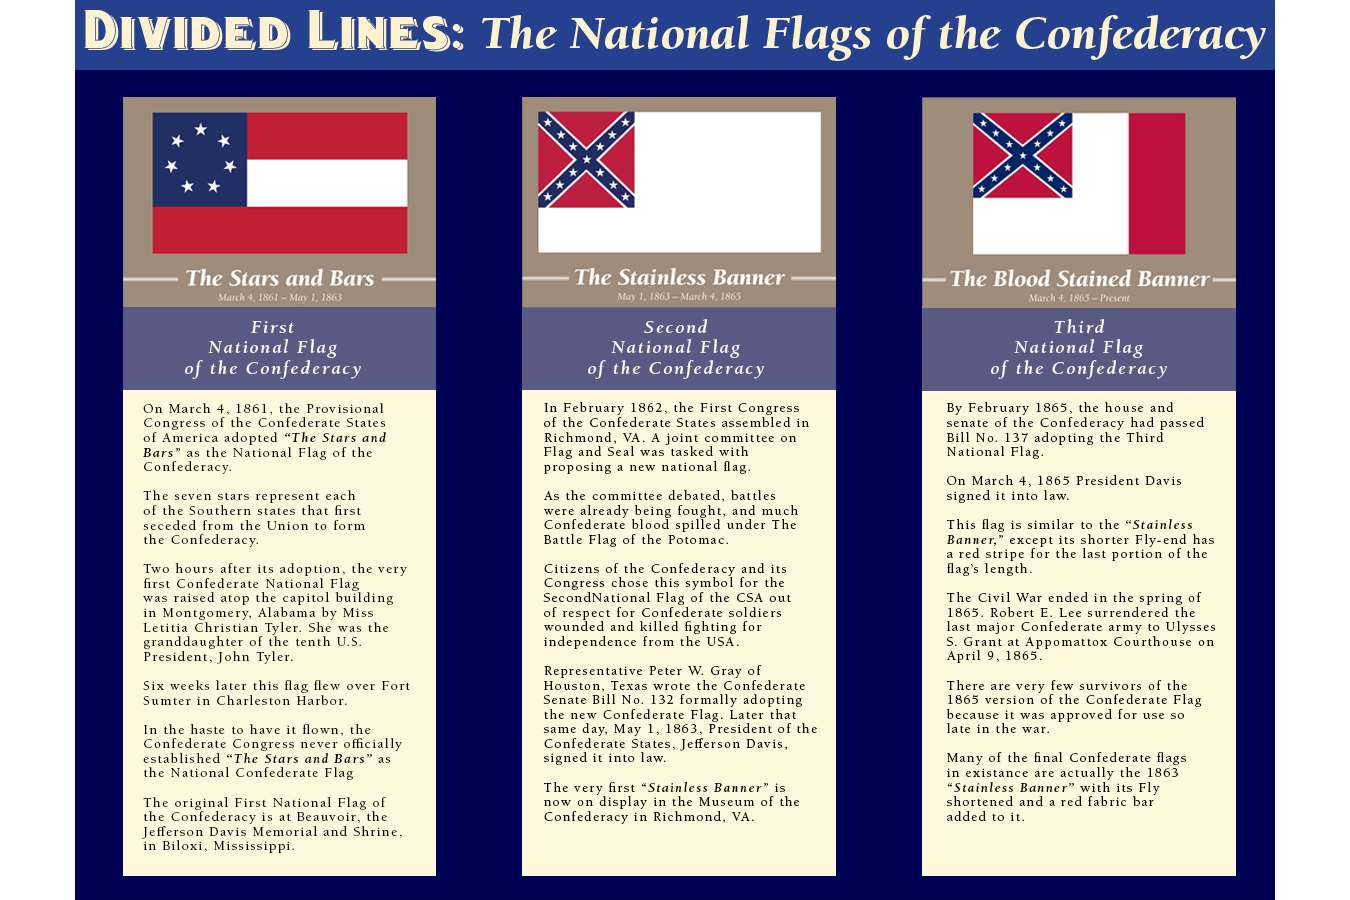 DMFAH 3 CFLAG 3 flags : There were 3 different Flags used by the Confederacy during the Civil War. As the war progressed the Confederate flag evolved to reflect changing attitudes and practical use of the banner